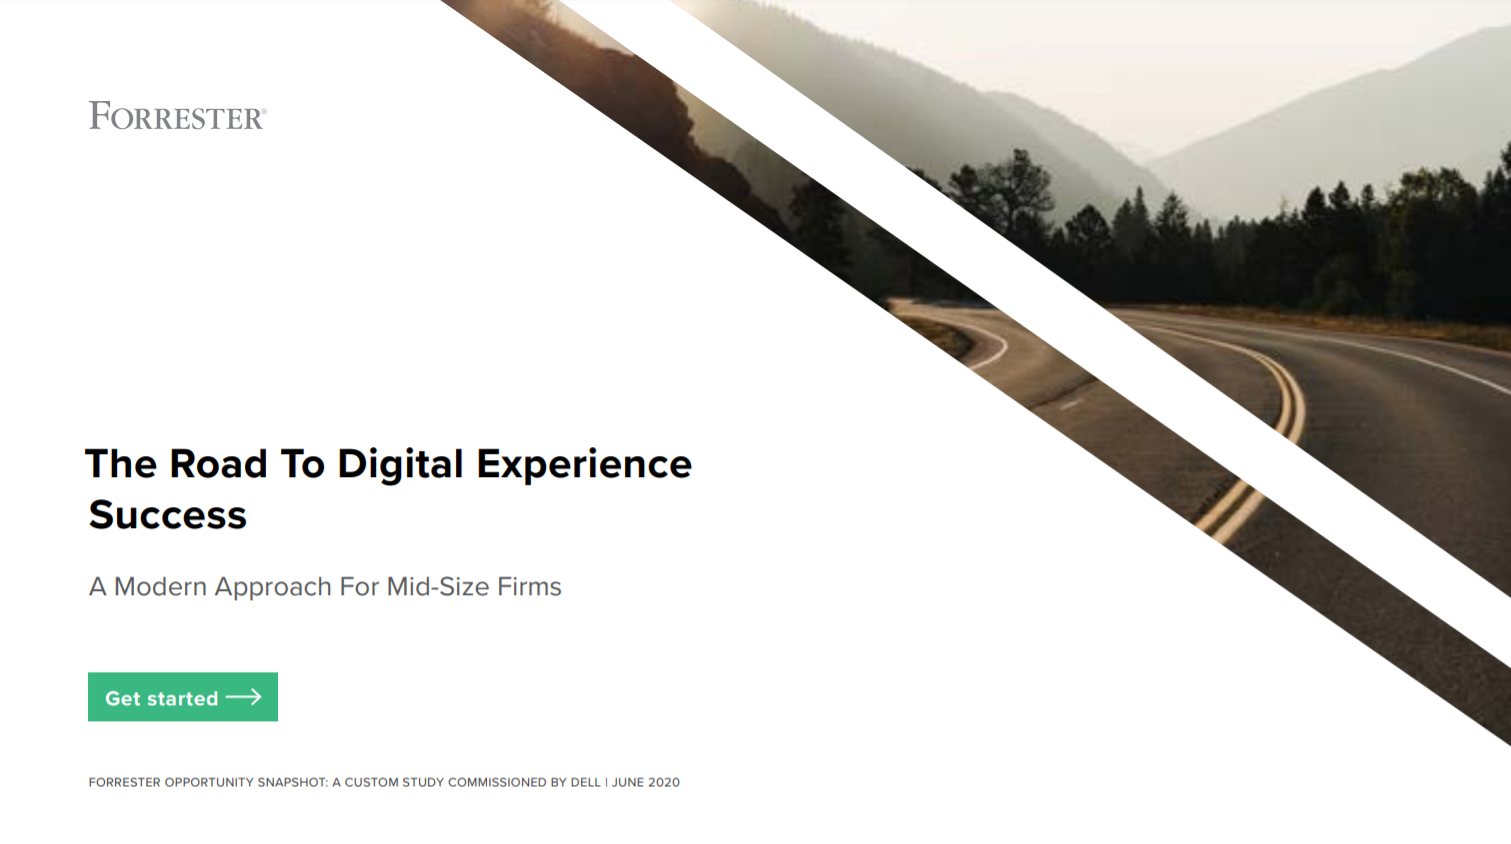 FORRESTER: THE ROAD TO DIGITAL EXPERIENCE SUCCESS - A MODERN APPROACH FOR MID-SIZE FIRMS (MY).pdf